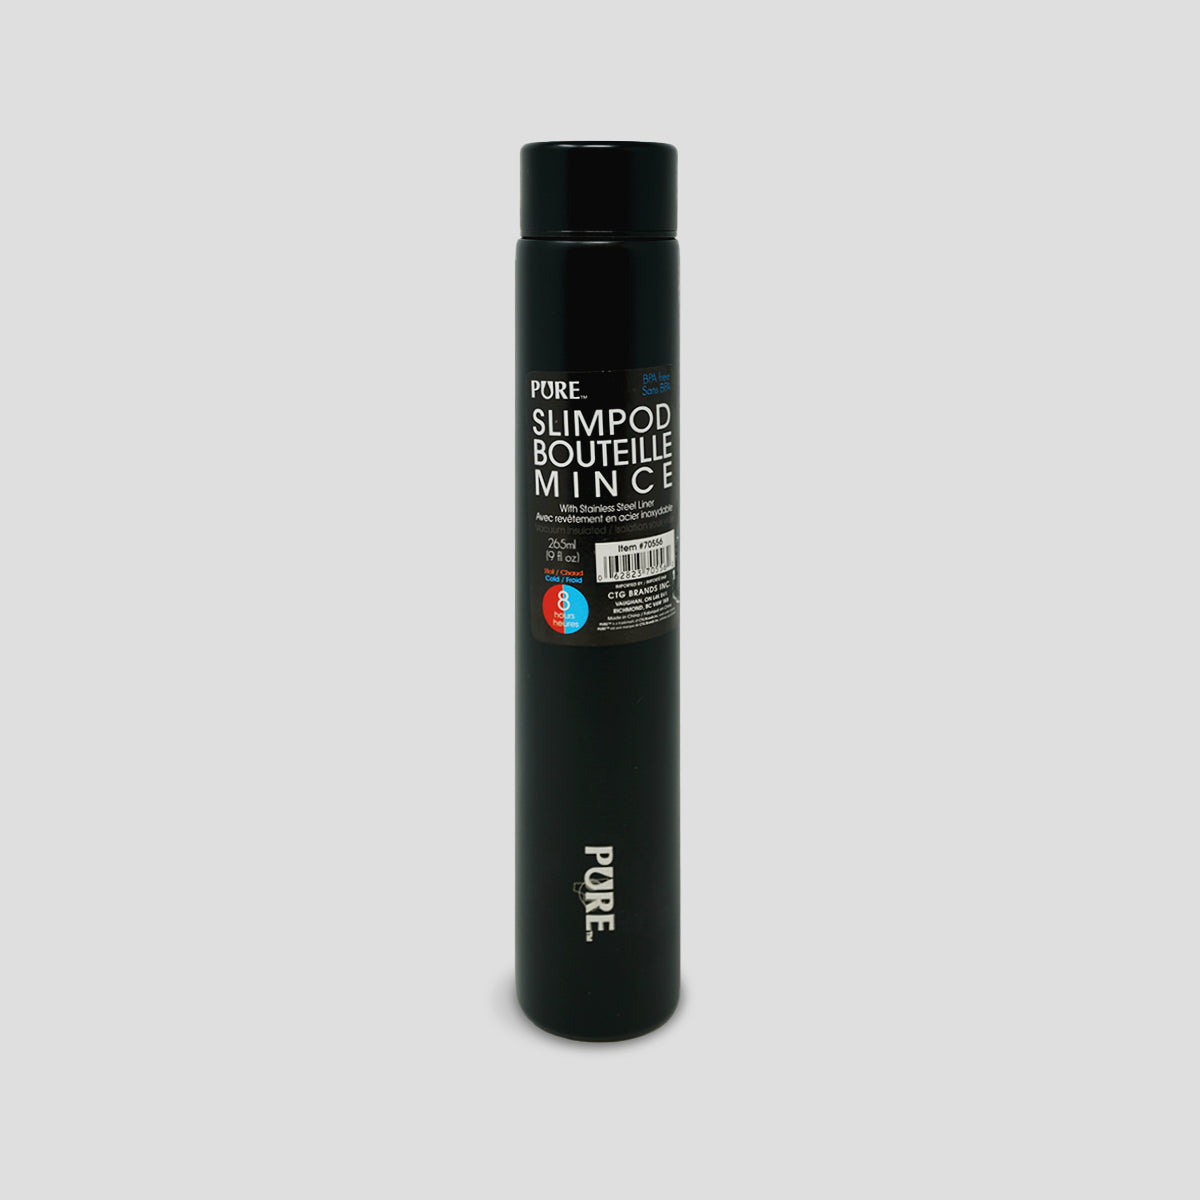 PURE Slimpod Thermal Bottle